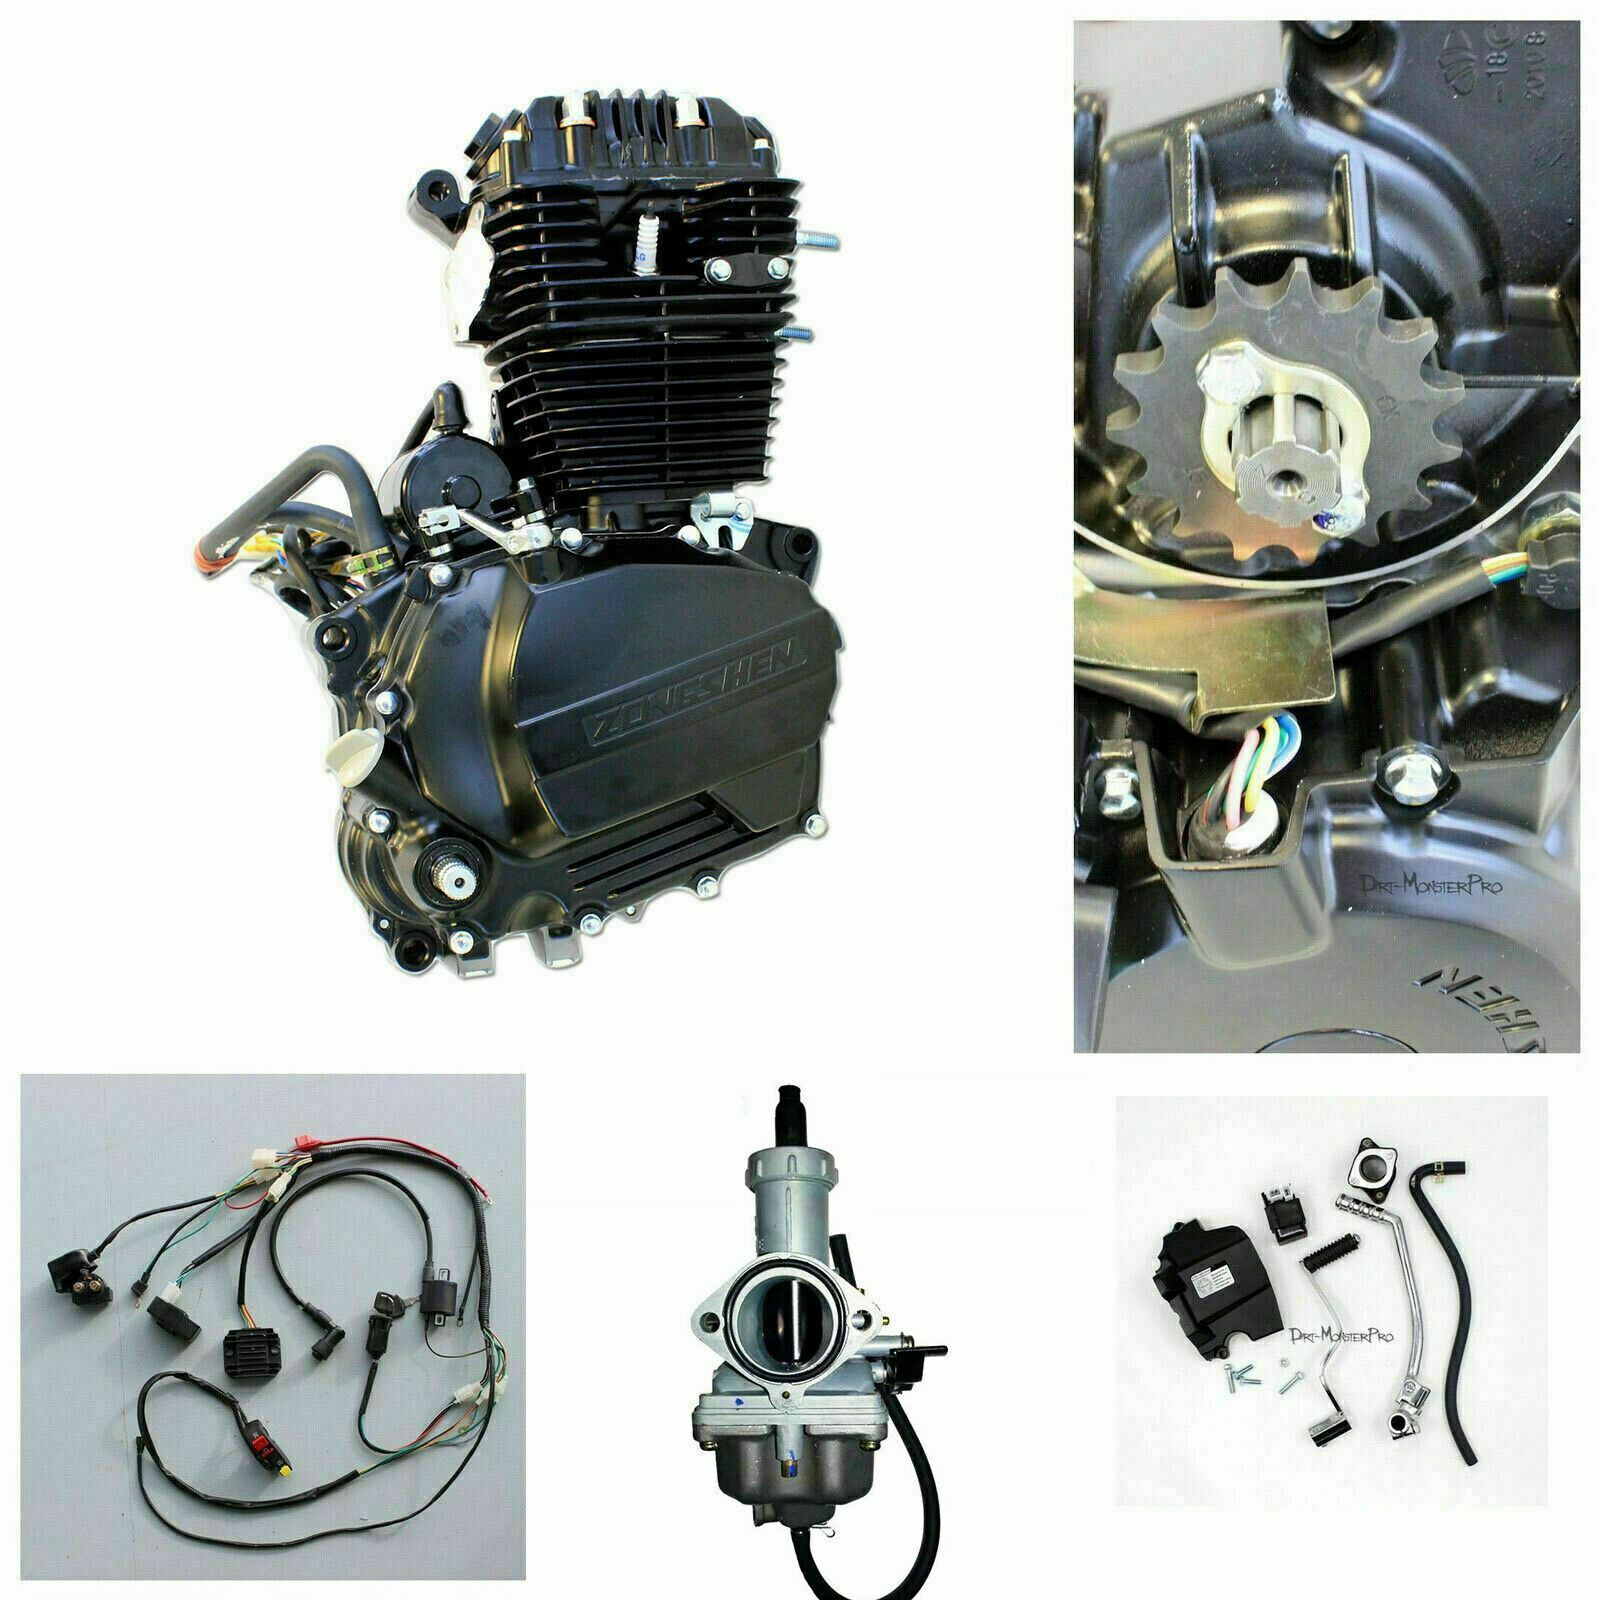 Zongshen 250cc Ohc Engine Motor Manual Clutch Kit Wiring Harness Pit Loom Kill Switch For 50cc 110cc 125 140 150 160cc Dirt Bike 1 Of 7free Shipping See More